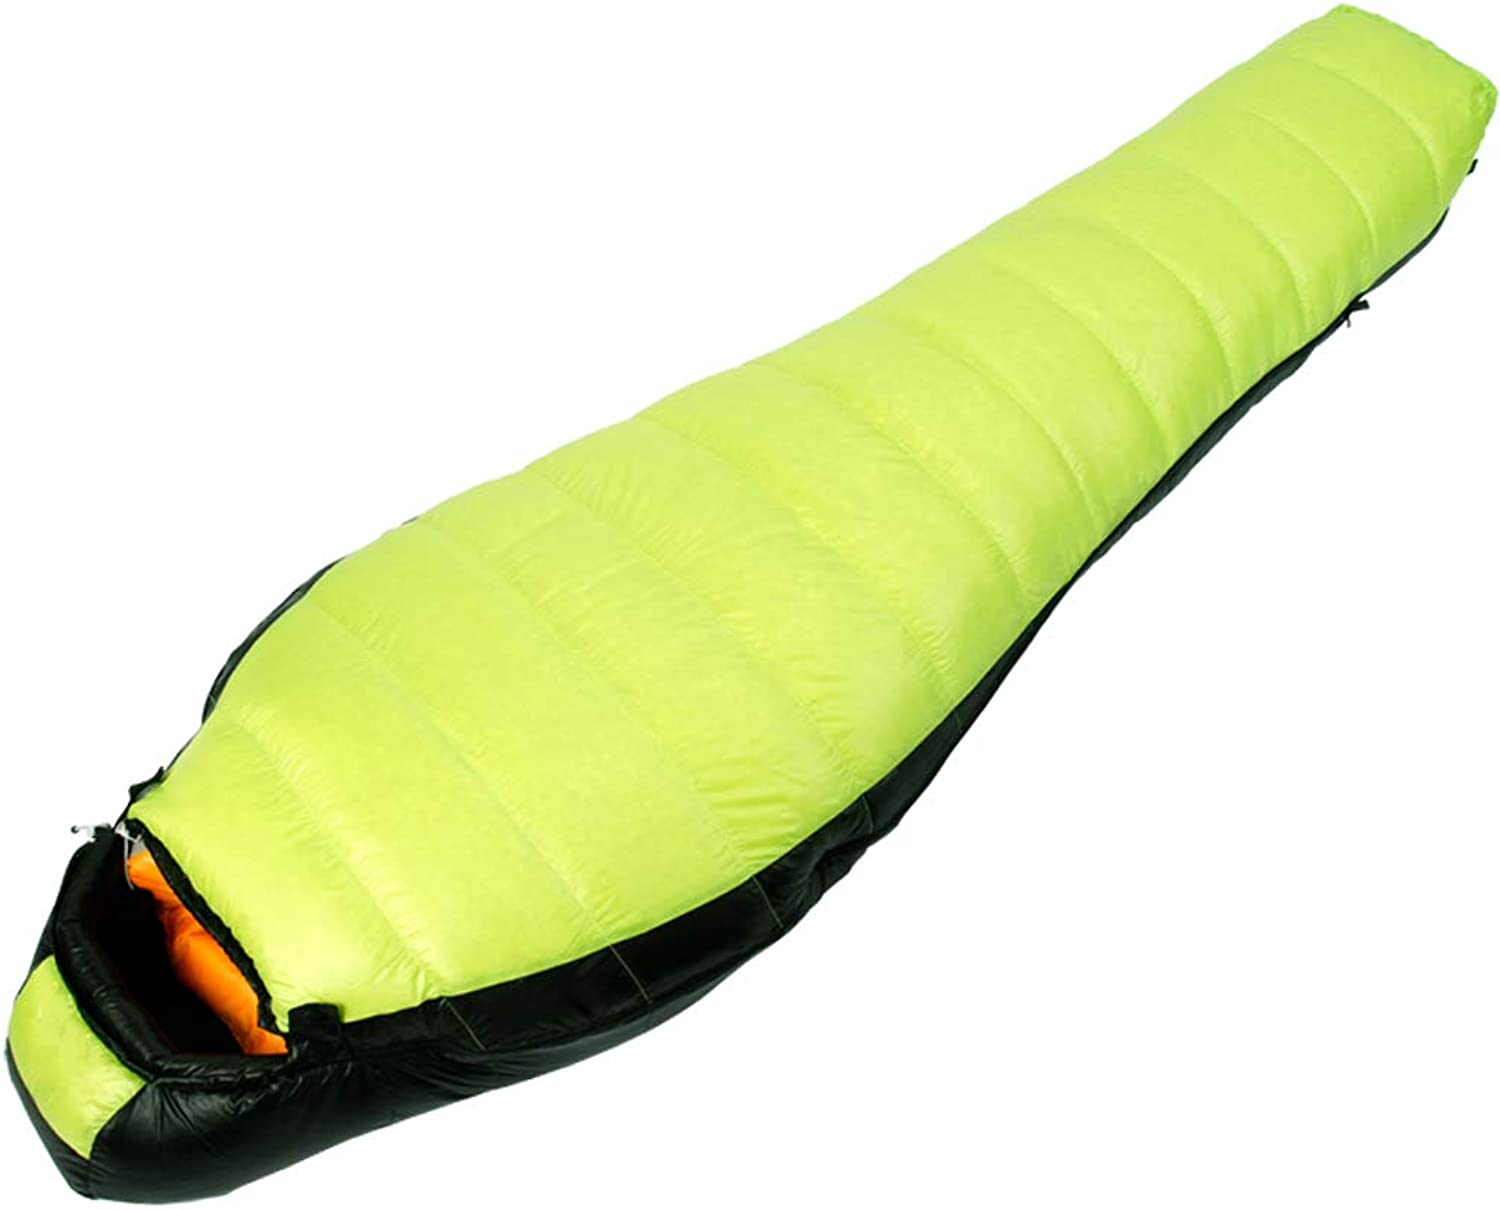 Single Sleeping Bag mummified Travel Sleeping Bag Suitable for 15 ° C Duck Down Filling Green color 220 X 80 cm 1400 g